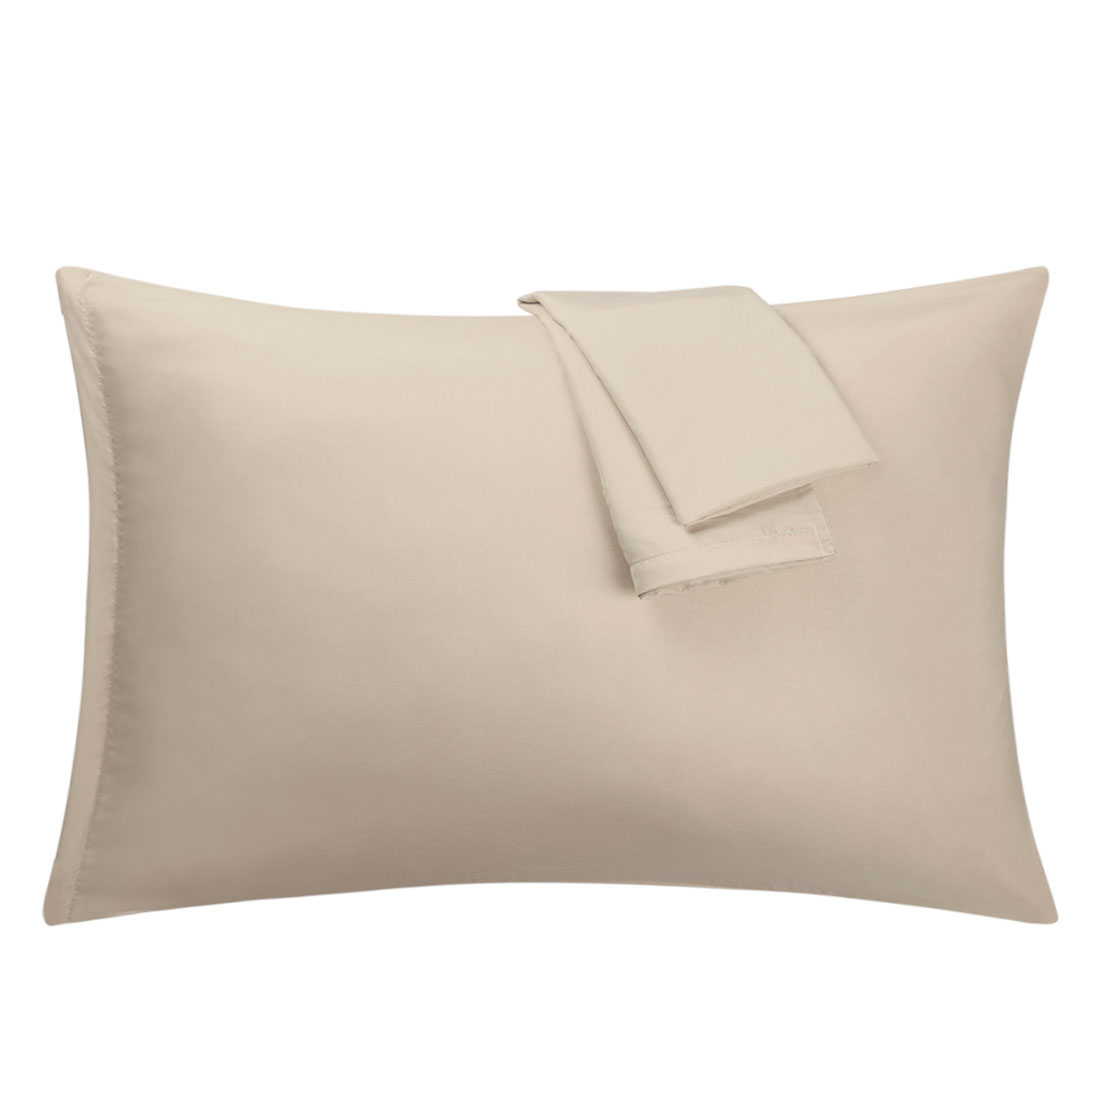 Khaki Pillowcases Soft Microfiber Pillow Case Cover with Zipper Standard, 2 Pack